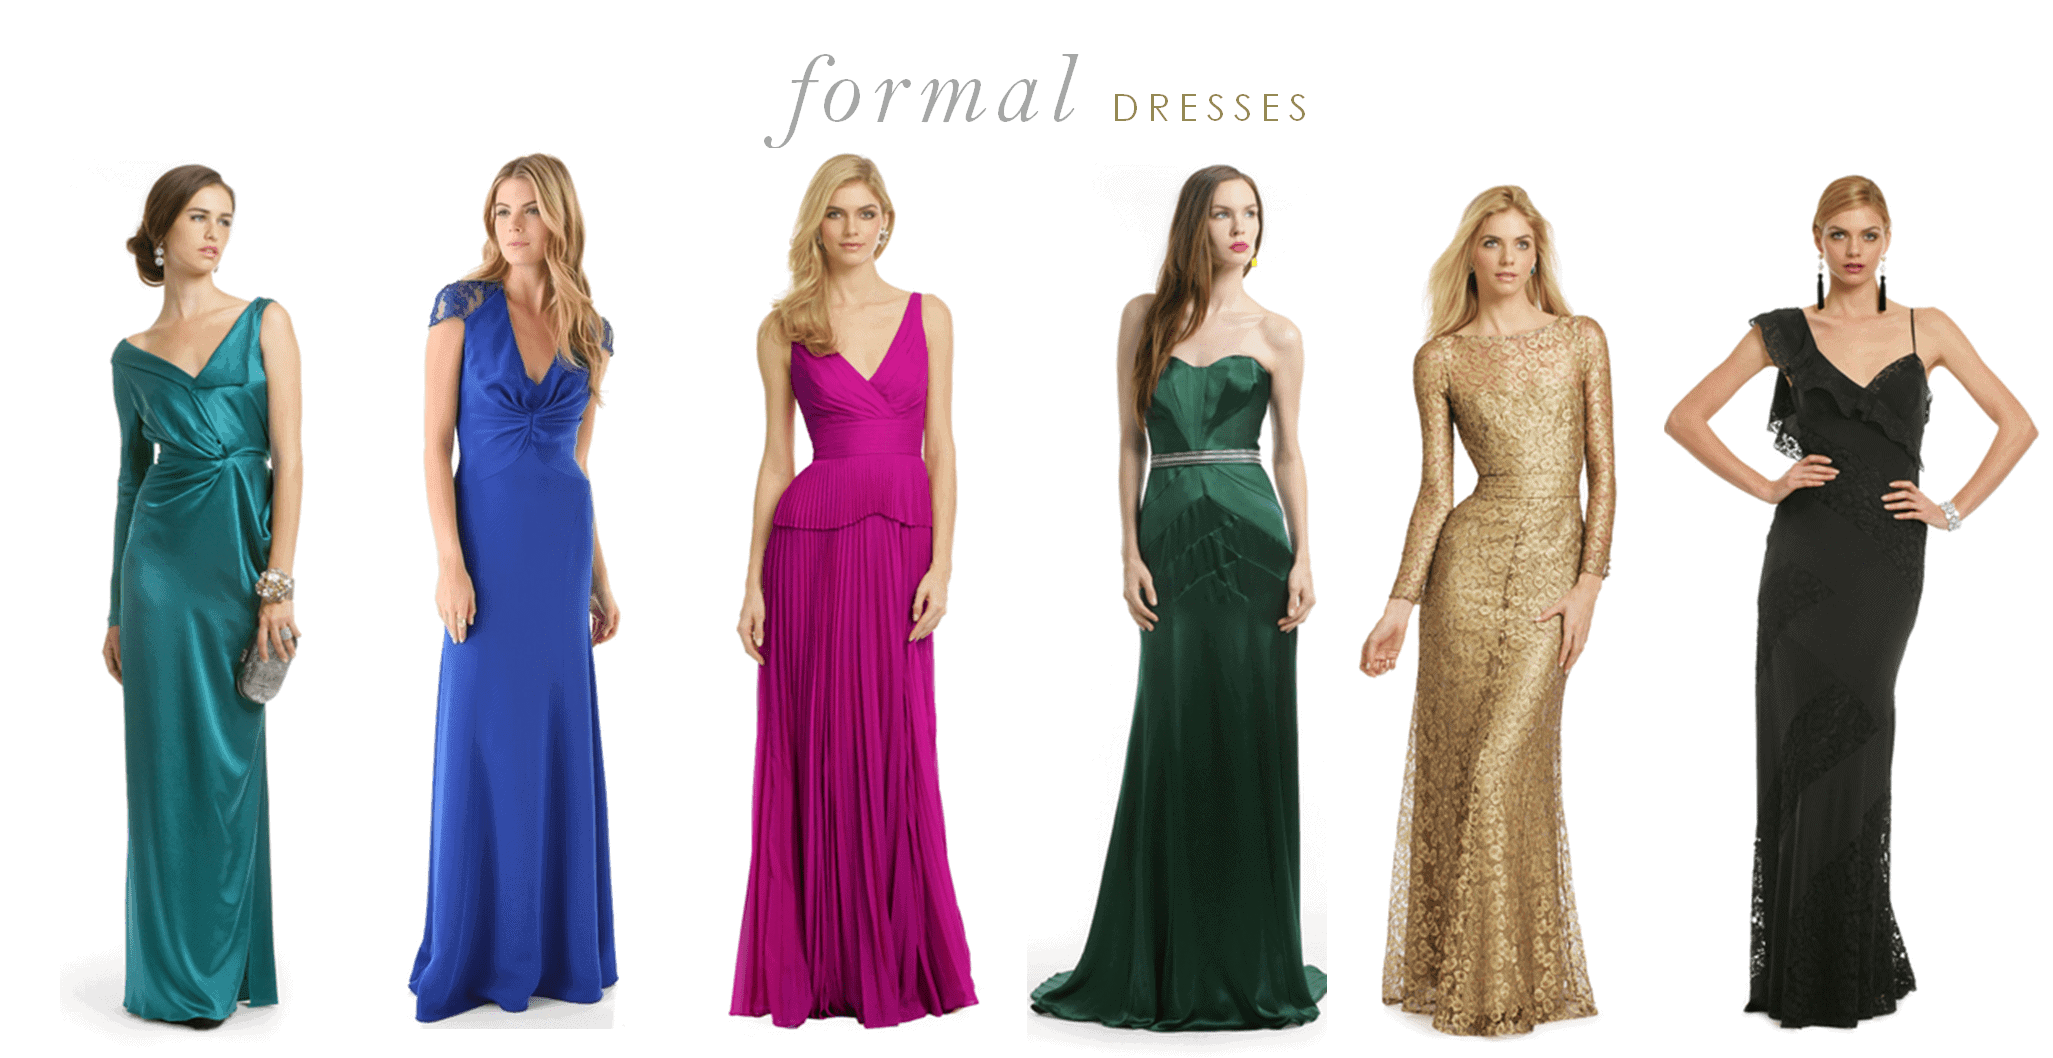 formal dresses for weddings